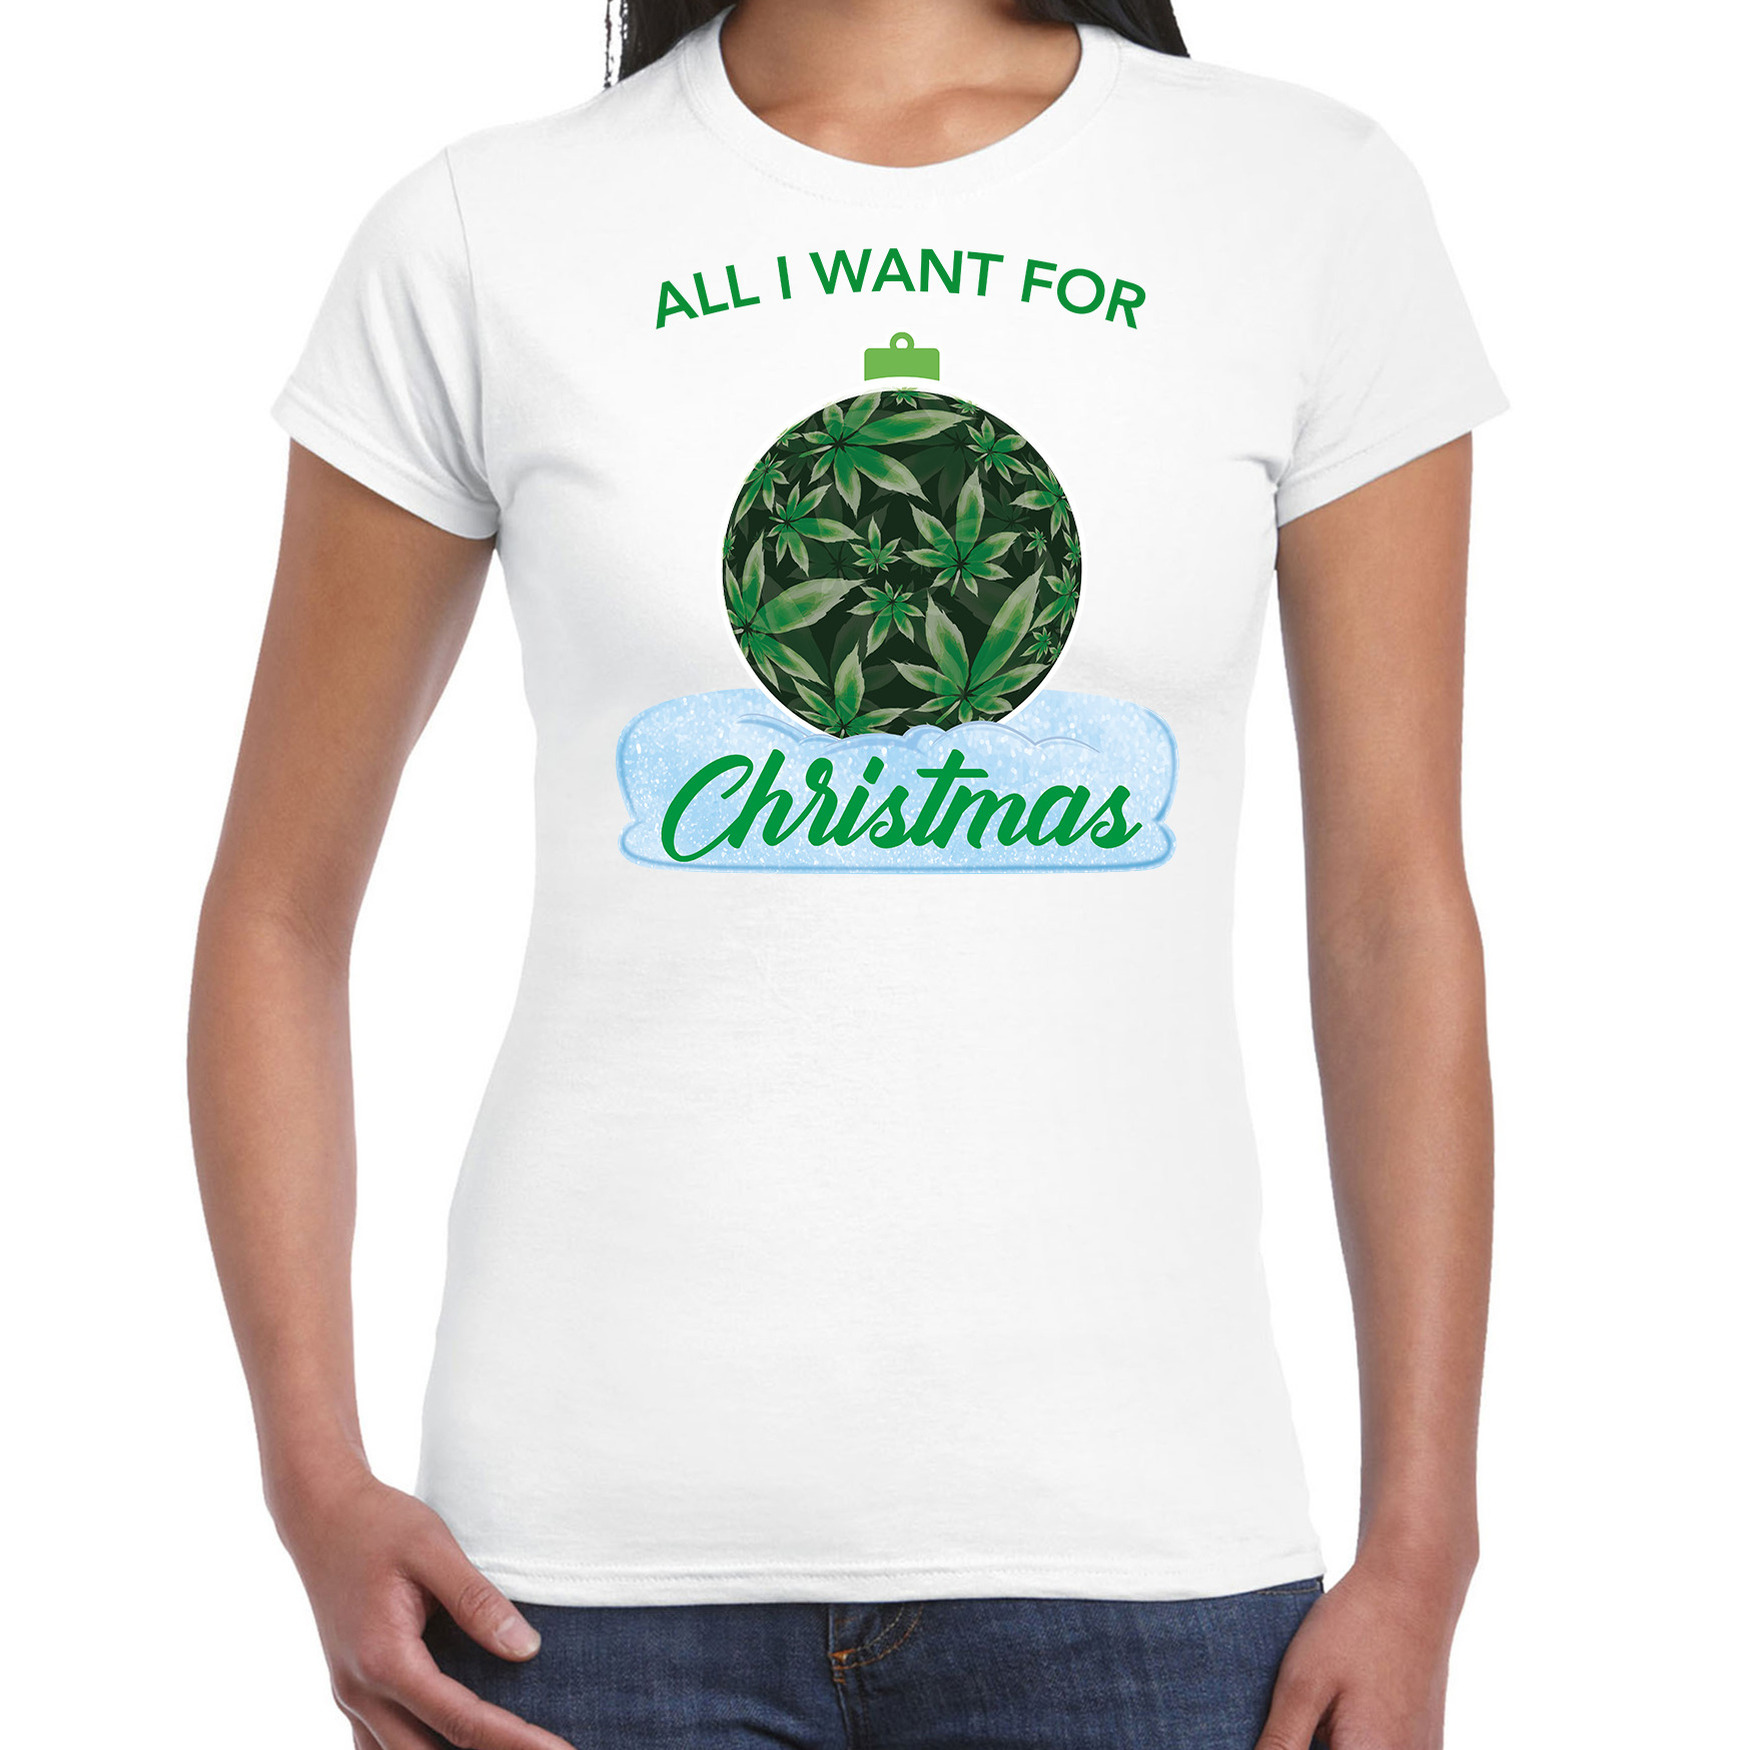 Wiet kerstbal shirt kerst t-shirt all i want for christmas wit voor dames